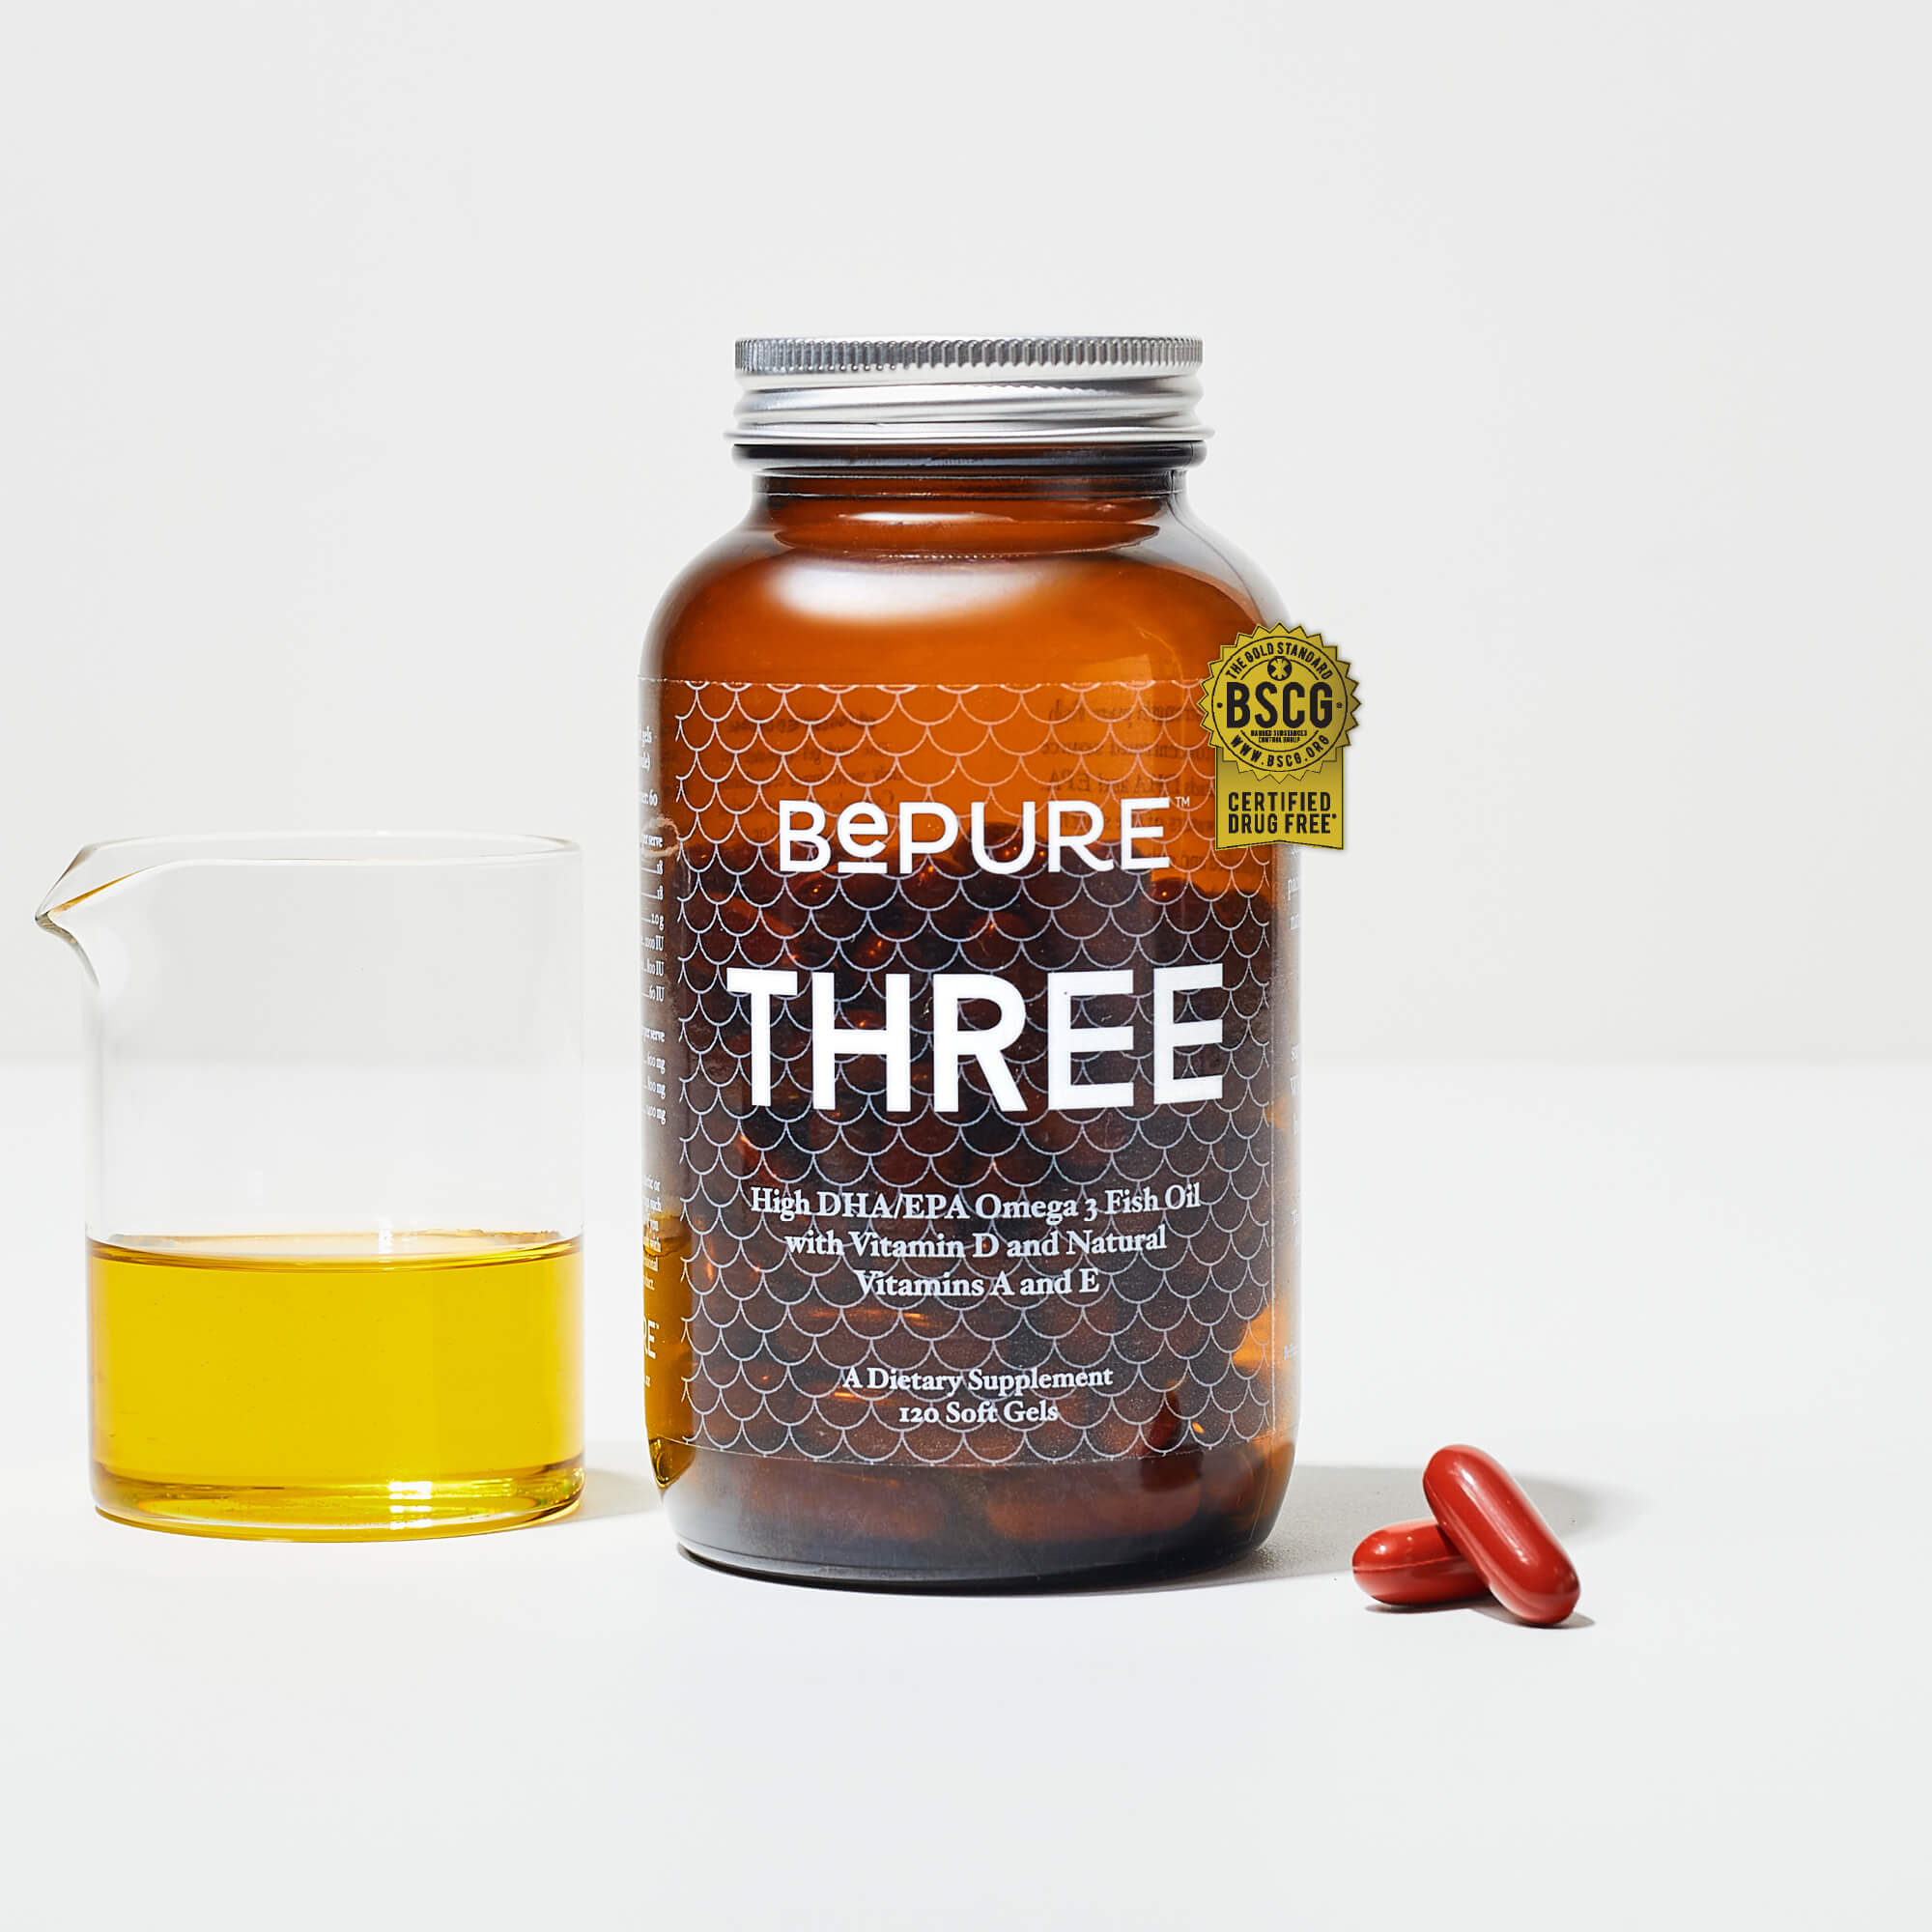 BePure Three Omega 3 Fish Oil - 60 Day